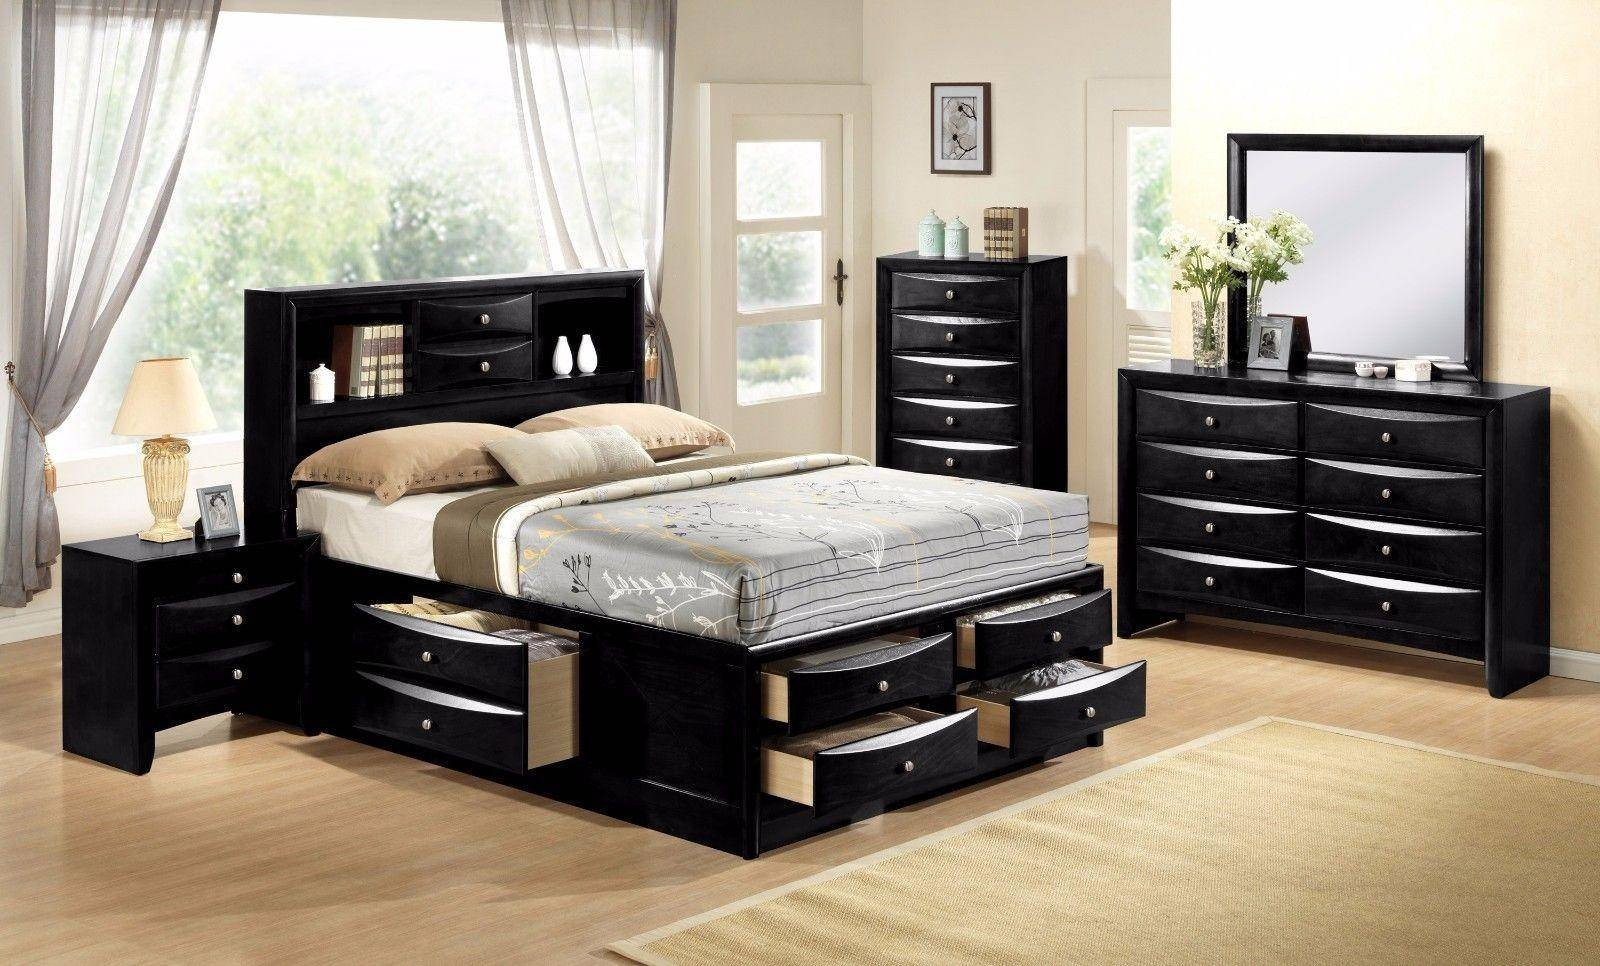 Bedroom Set Full Size Bed New Crown Mark B4285 Emily Modern Black Finish Storage King Size